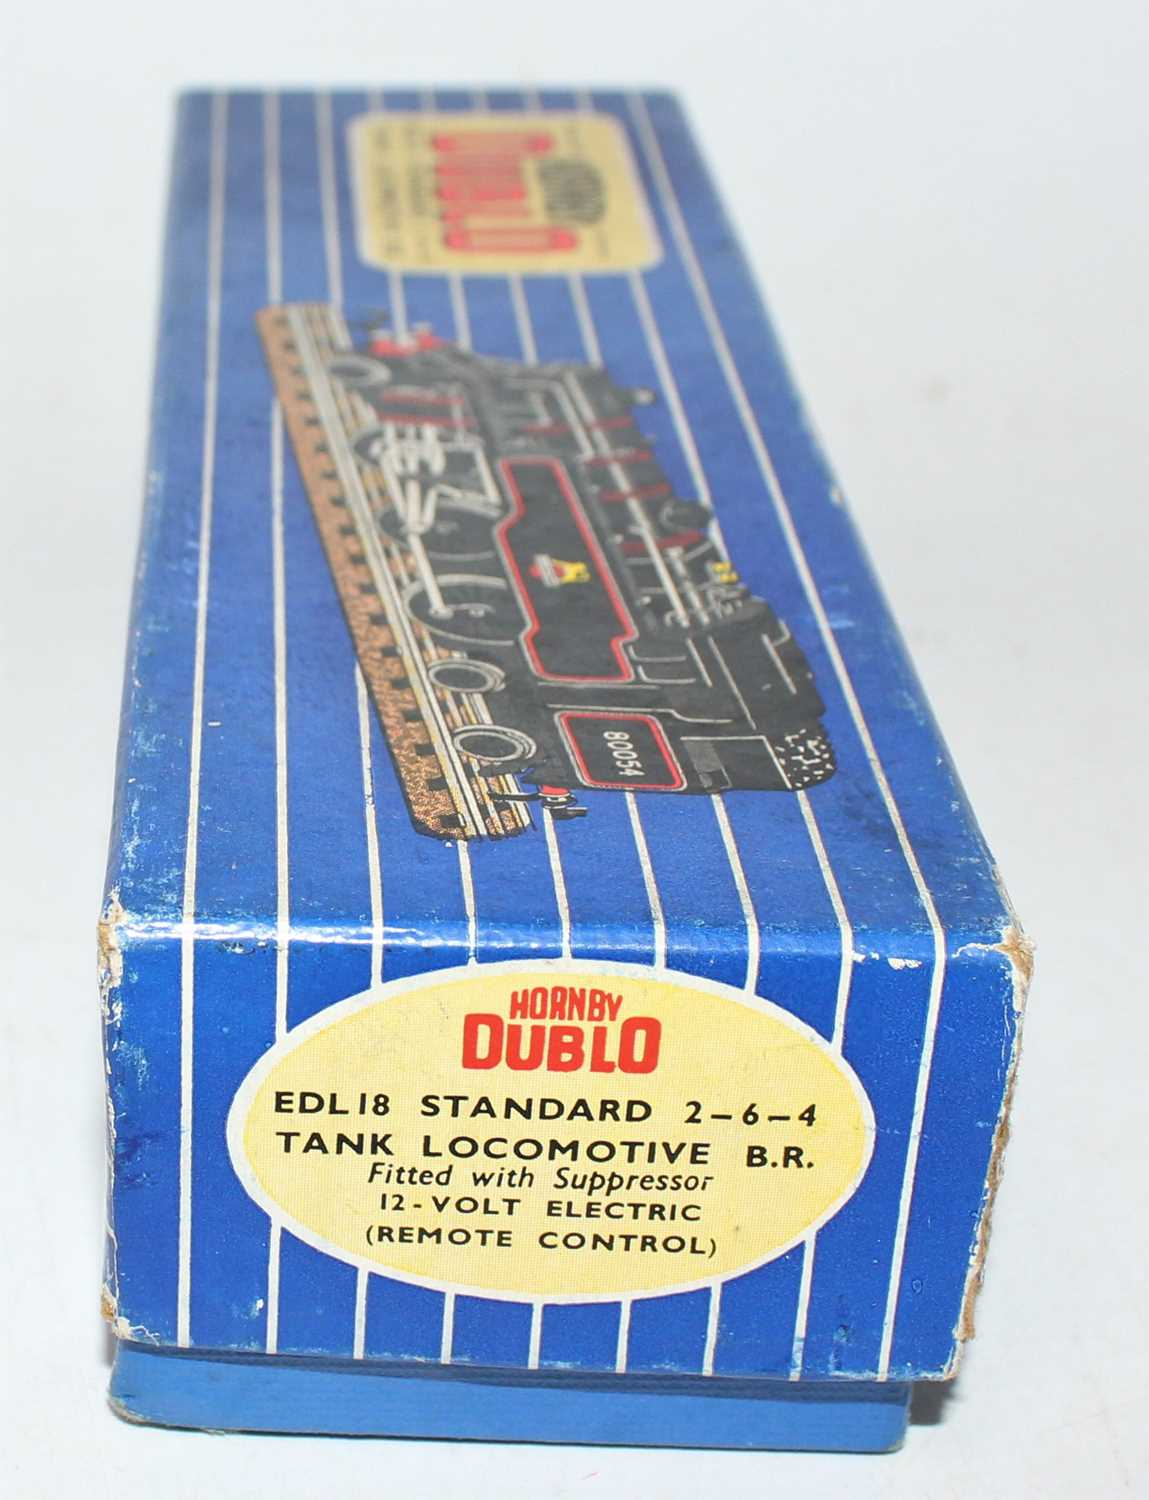 Hornby Dublo EDL18 3-Rail 2-6-4 tank loco BR 80054, no marks but will benefit from cleaning, - Image 2 of 2